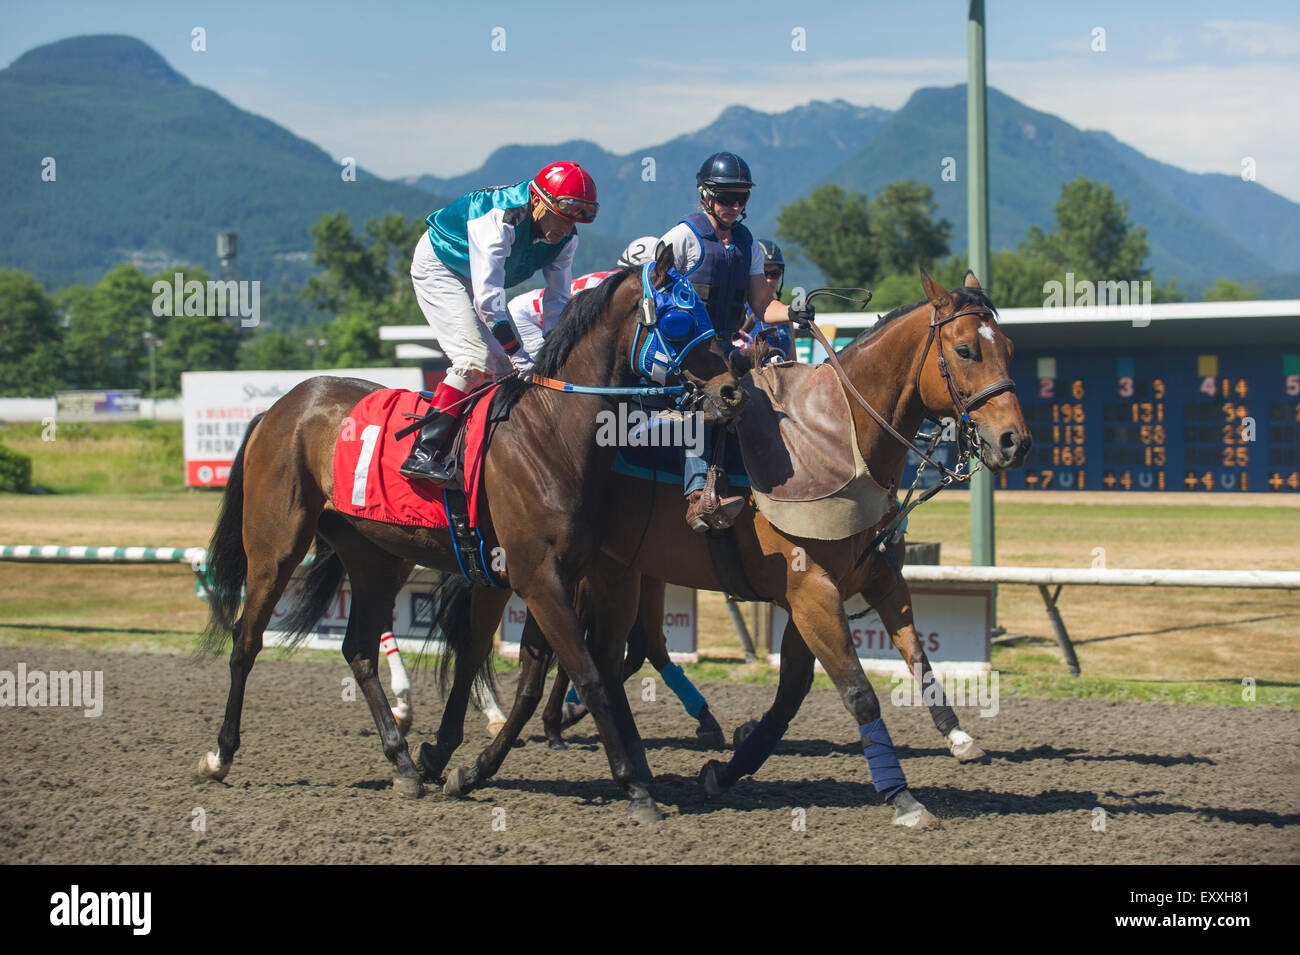 Post parade of jockey and horse race at Vancouver Hastings Exhibition Park race track. - Stock Image